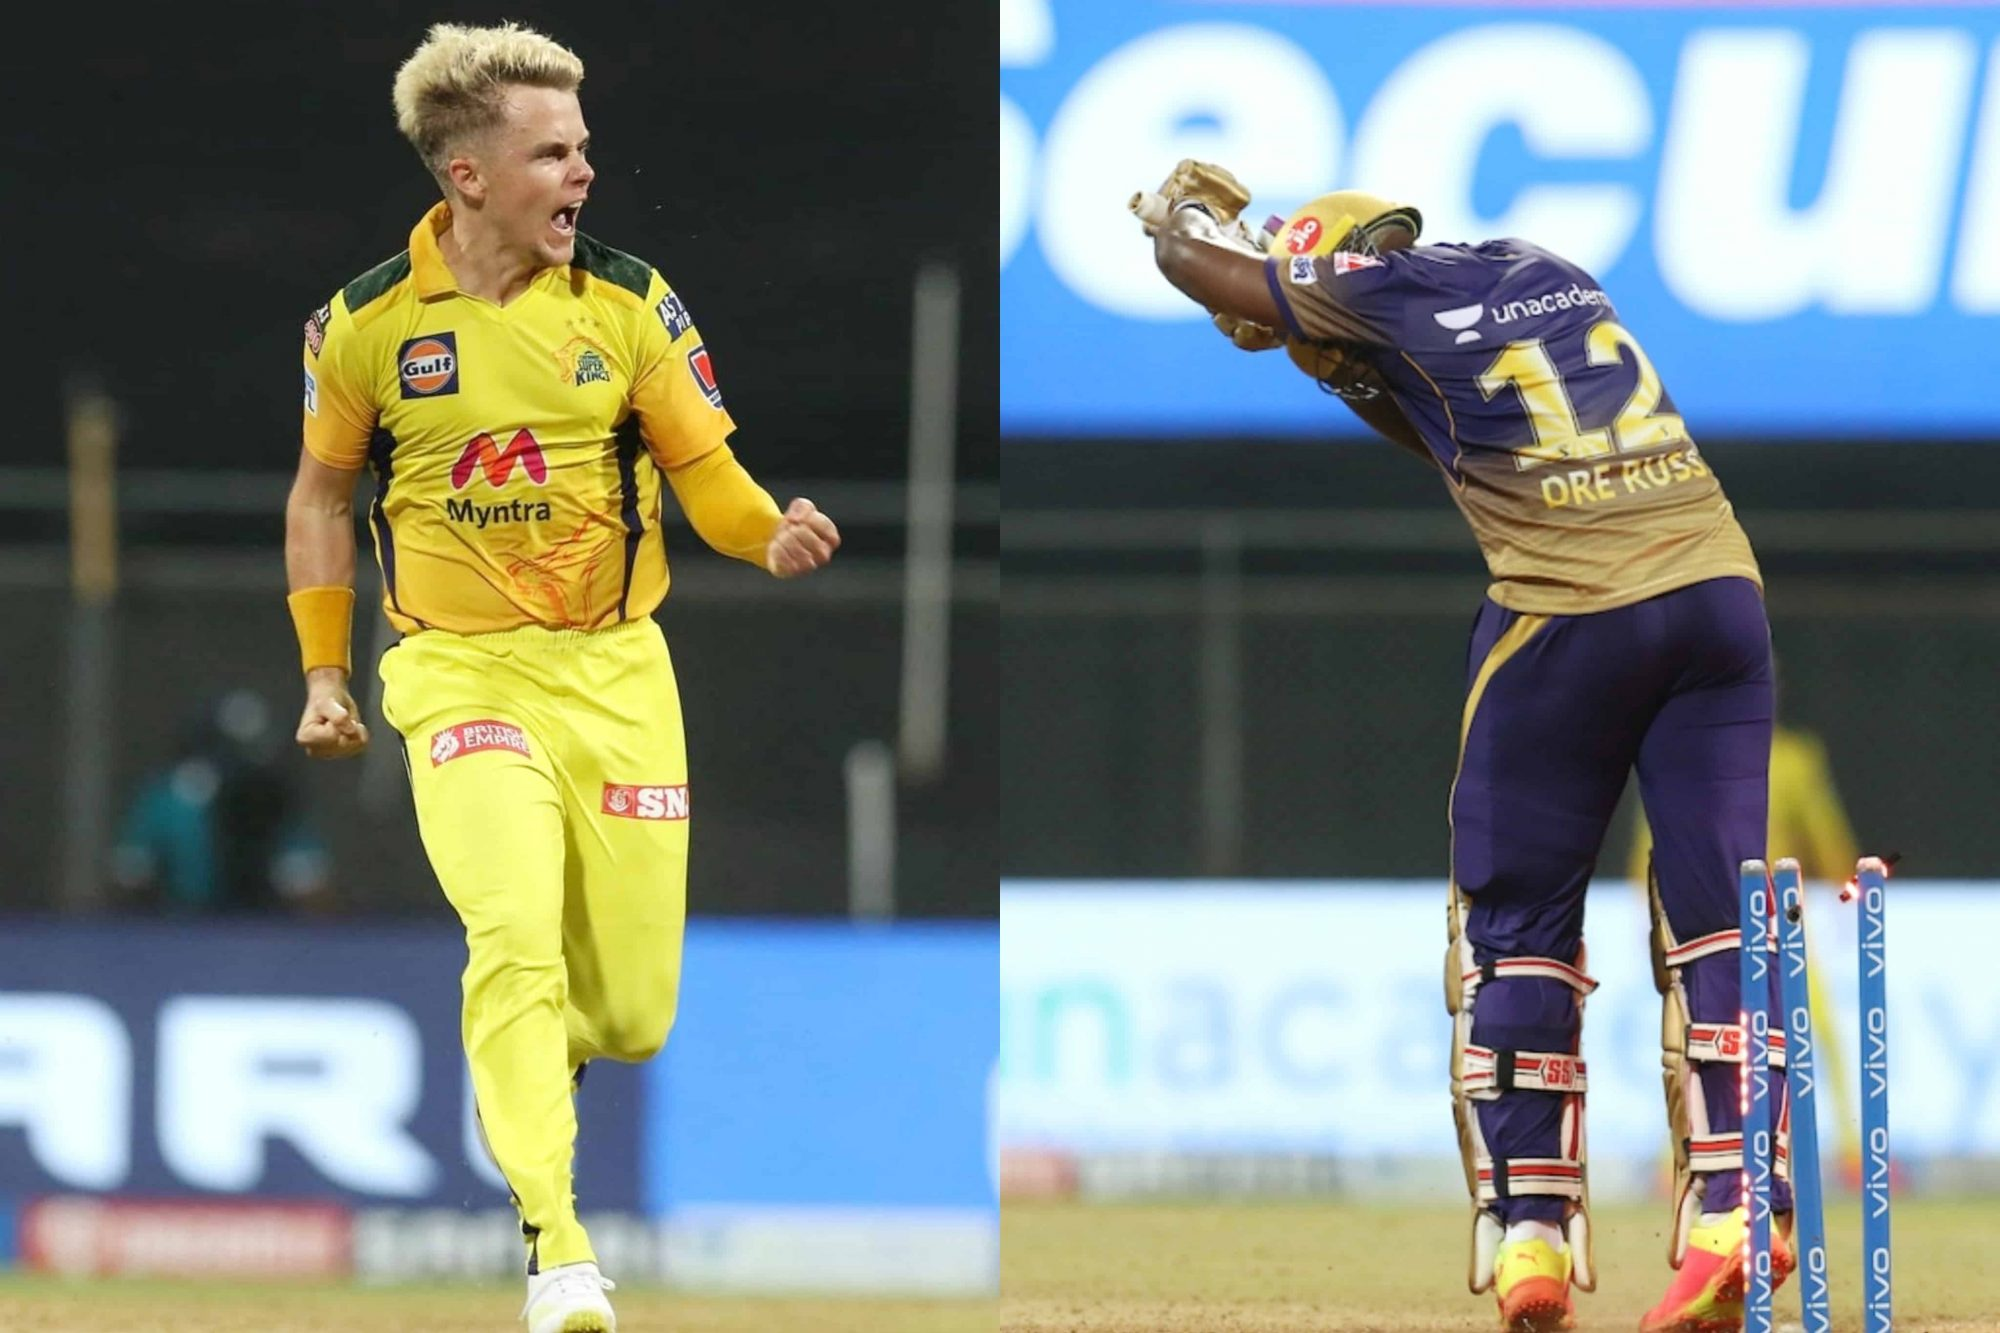 Watch: Sam Curran Clean Bowled Andre Russell In The Most Bizzare Way During KKR vs CSK